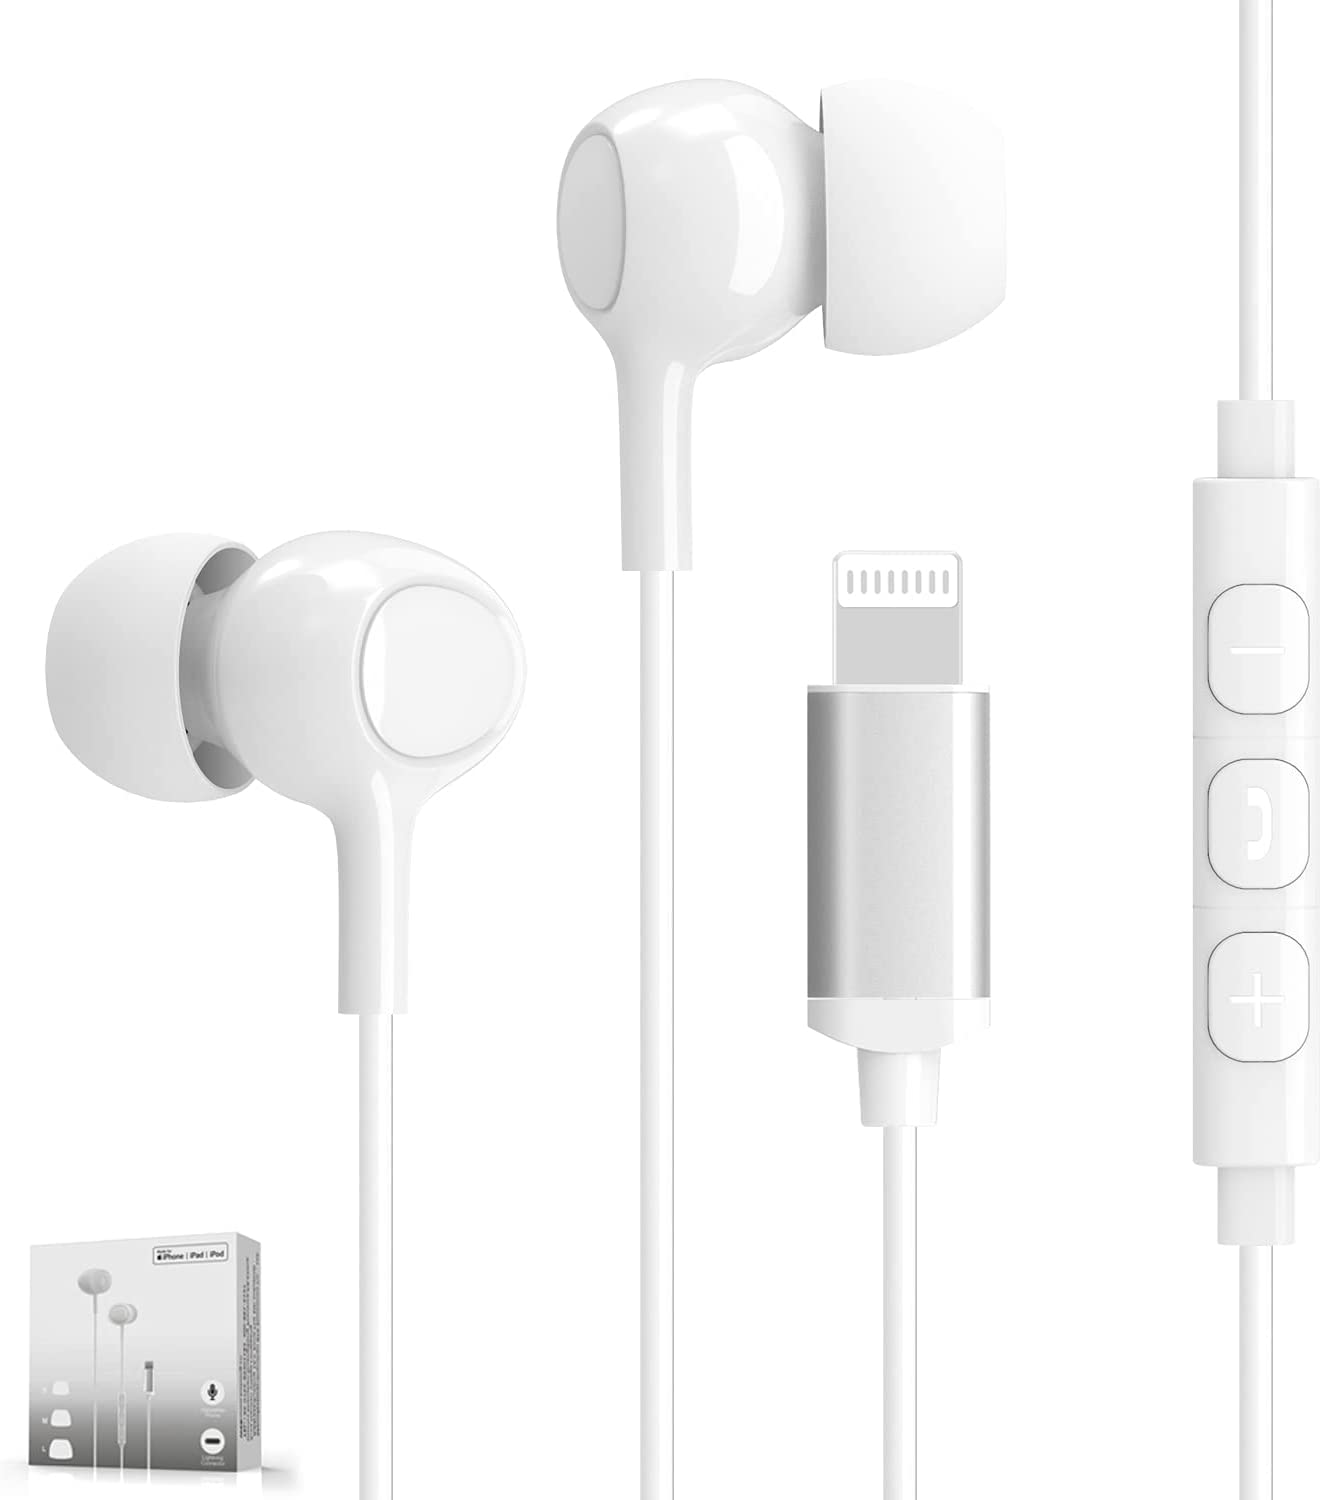 MFi Certified Lightning Earphones with Mic and Volume Remote iPhone Headphones in Ear Wired Noise Isolation Earbuds Compatible for iPhone 12/11/XR/XS/X, 8/8 Plus, 7/7 Plus, iPad, iPod